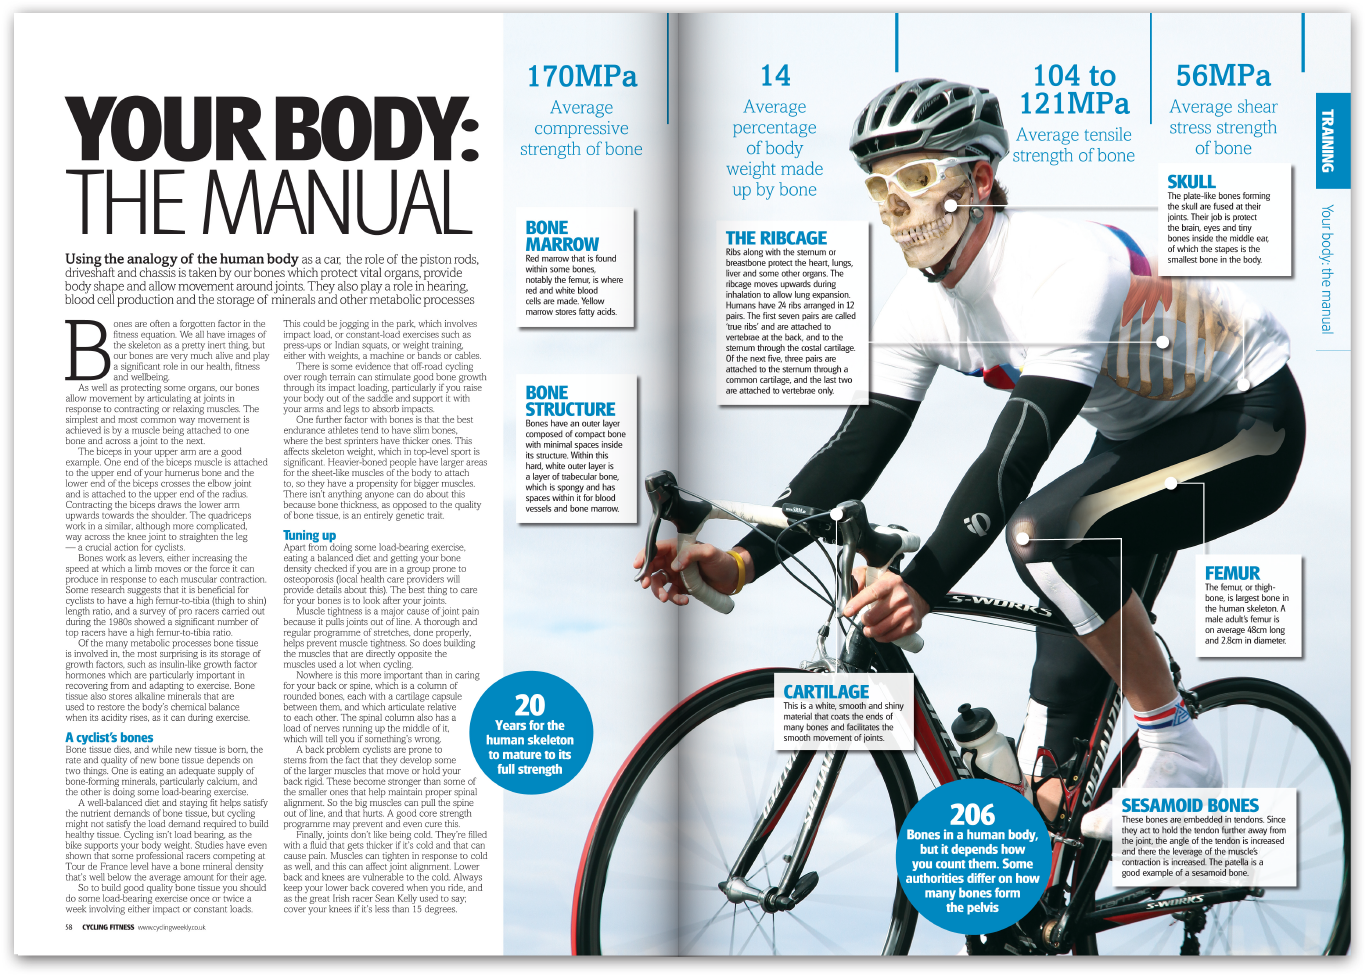 This was a regular feature where I Photoshopped the workings of the body onto cyclists to illustrate the text